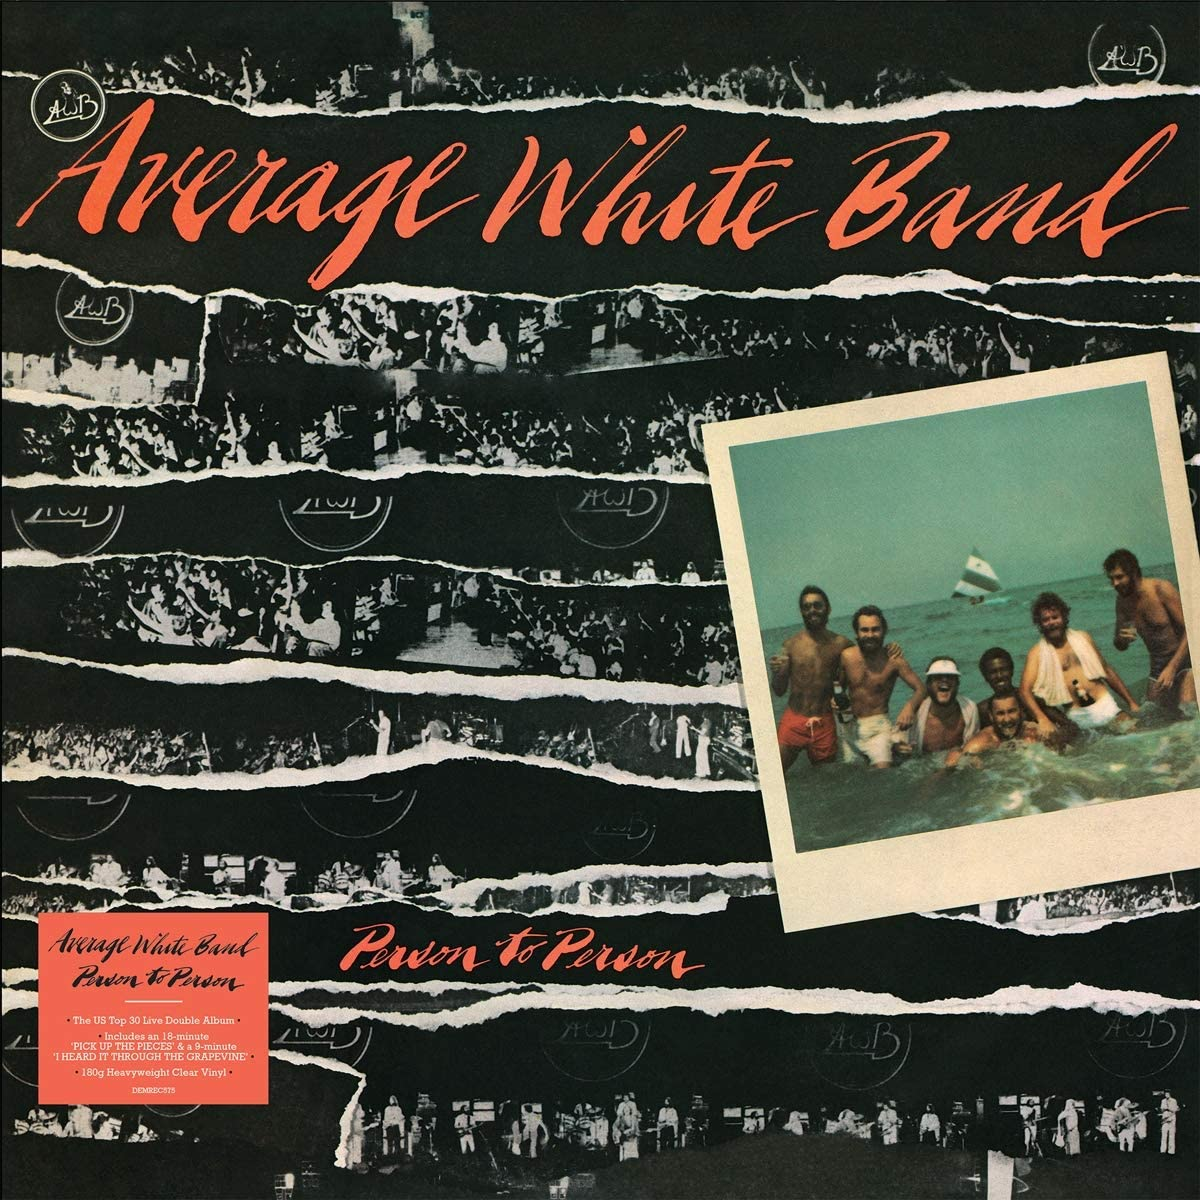 Average White Band - Person to Person Limited Edition Clear Vinyl